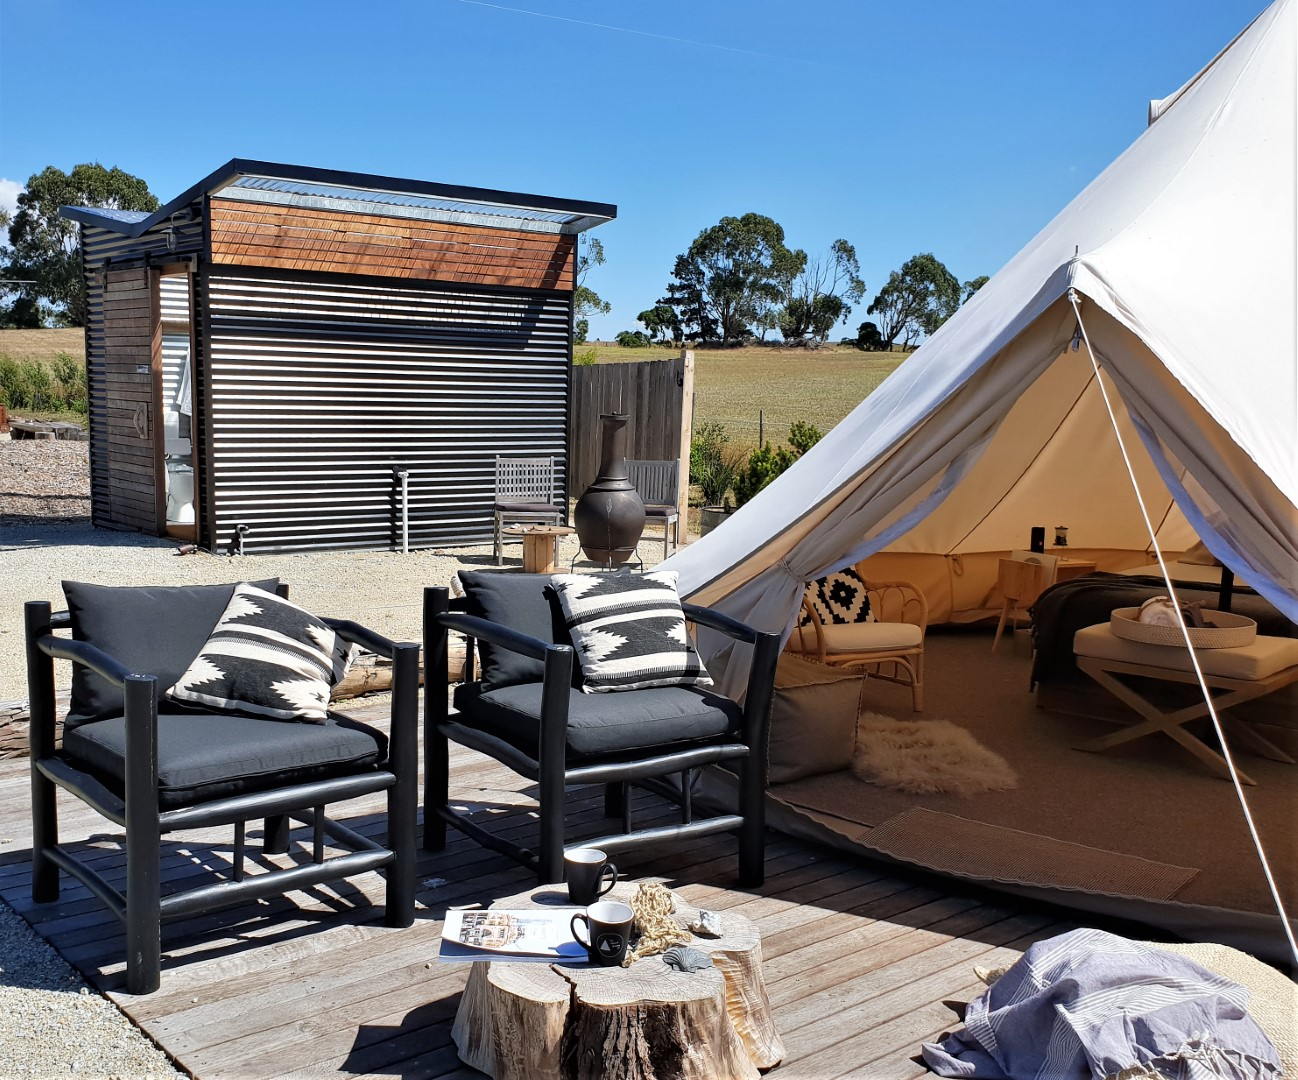 Anderson's Let Bell Tent